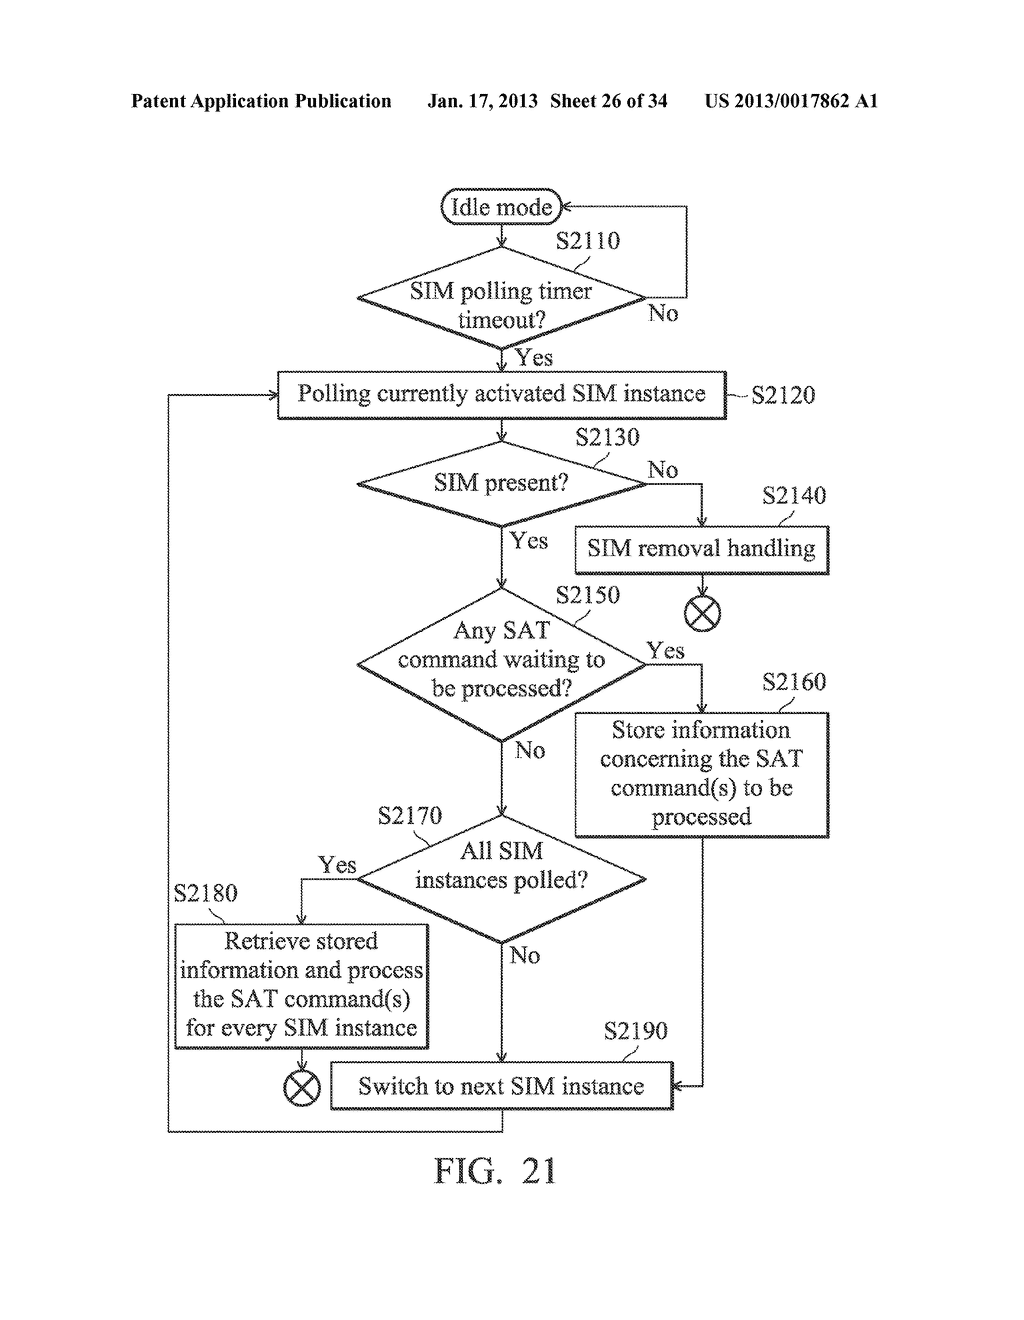 APPARATUSES AND METHODS FOR PROVIDING MULTI-STANDBY MODE OF WIRELESS     COMMUNICATIONS USING SINGLE SUBSCRIBER IDENTITY CARD WITH MULTIPLE     SUBSCRIBER NUMBERSAANM Lee; Chih-HungAACI Kaohsiung CityAACO TWAAGP Lee; Chih-Hung Kaohsiung City TWAANM Wu; Min-JuAACI Kaohsiung CityAACO TWAAGP Wu; Min-Ju Kaohsiung City TWAANM Chang; Nai-HsinAACI Taichung CityAACO TWAAGP Chang; Nai-Hsin Taichung City TWAANM Liu; Jen-ChienAACI New Taipei CityAACO TWAAGP Liu; Jen-Chien New Taipei City TW - diagram, schematic, and image 27